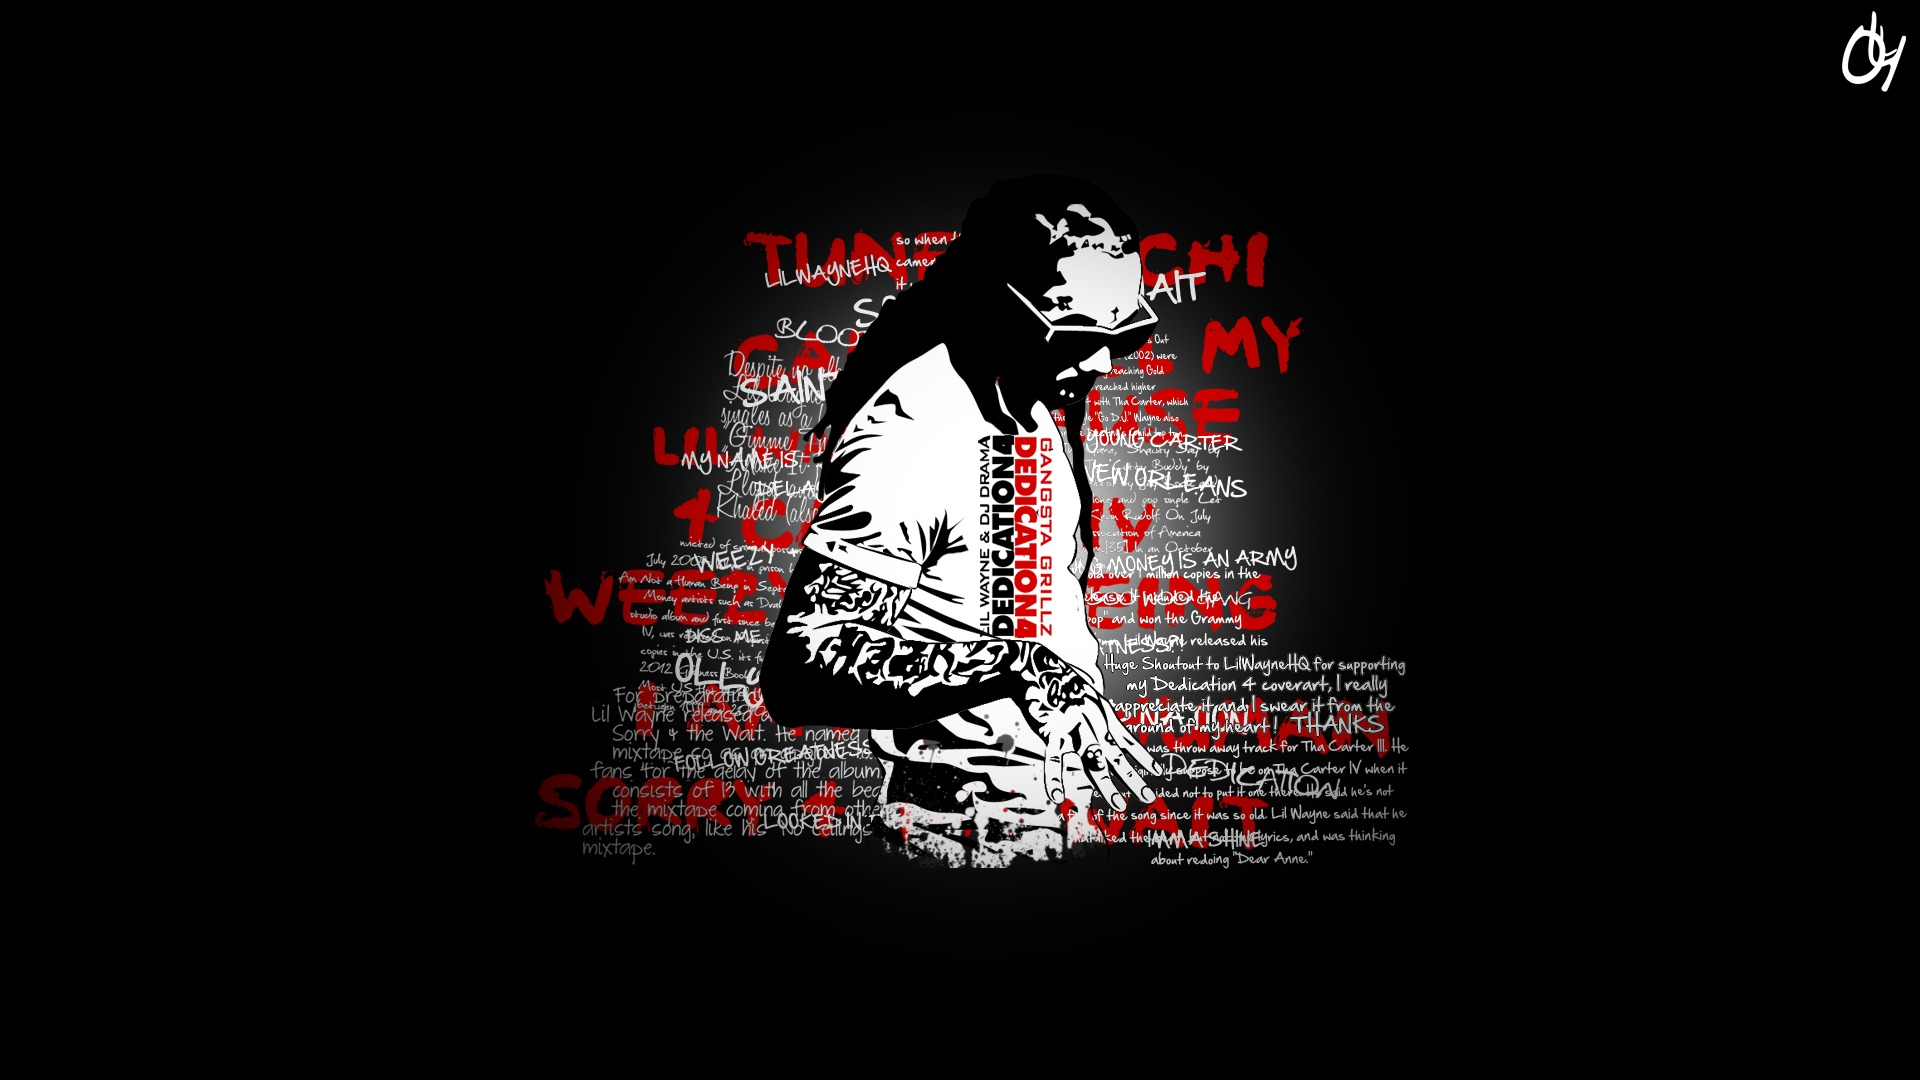 Chevron Quote Wallpaper Lil Wayne Hip Hop Rap Wallpaper 1920x1080 98371